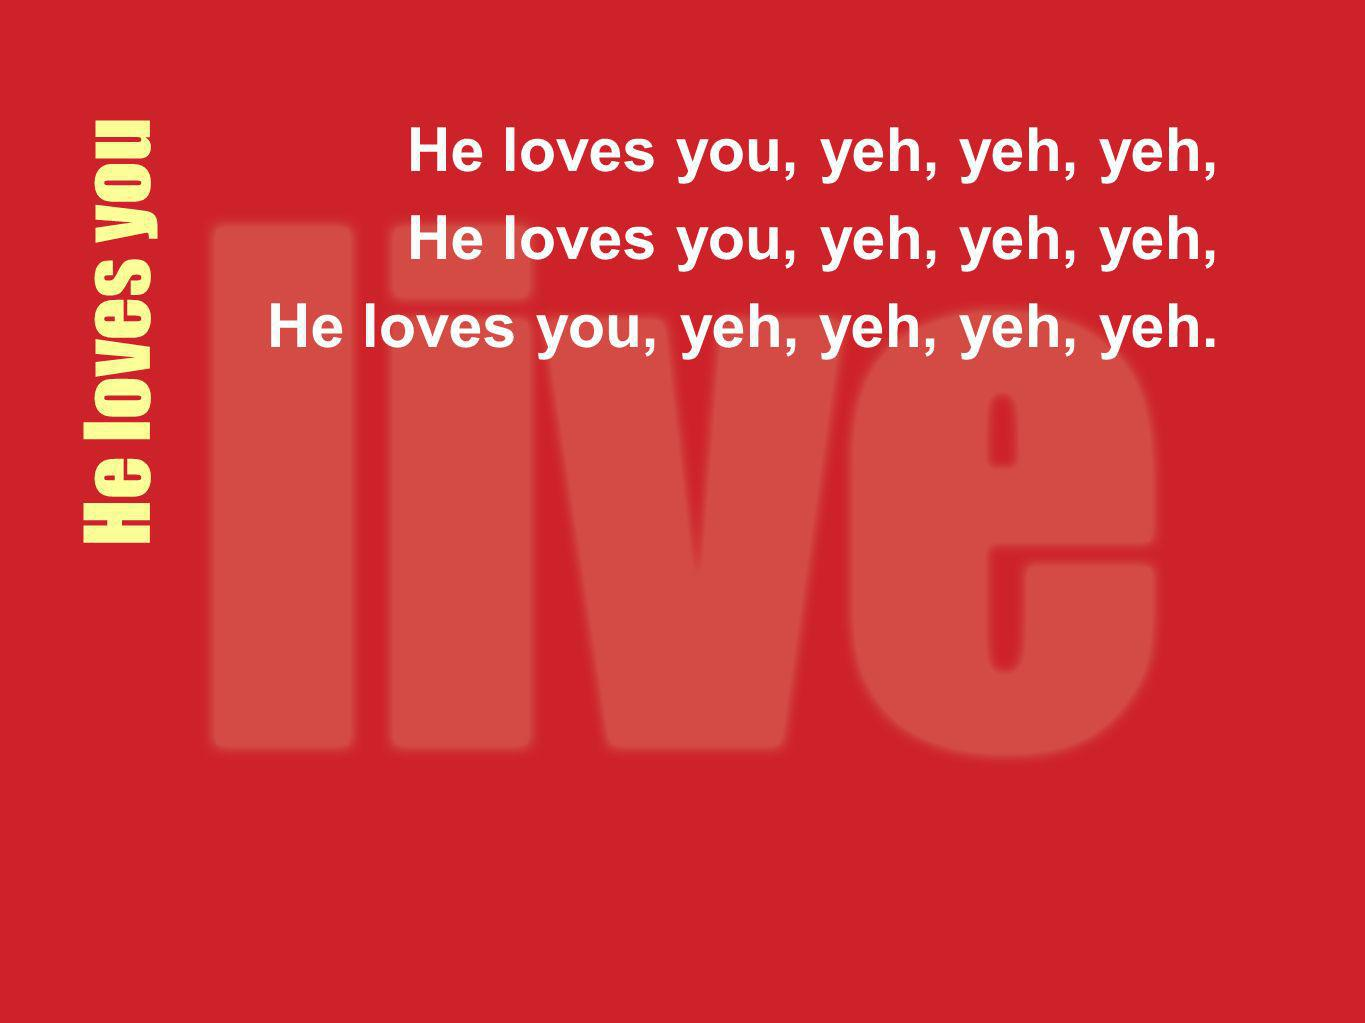 He loves you, yeh, yeh, yeh, He loves you, yeh, yeh, yeh, yeh. He loves you